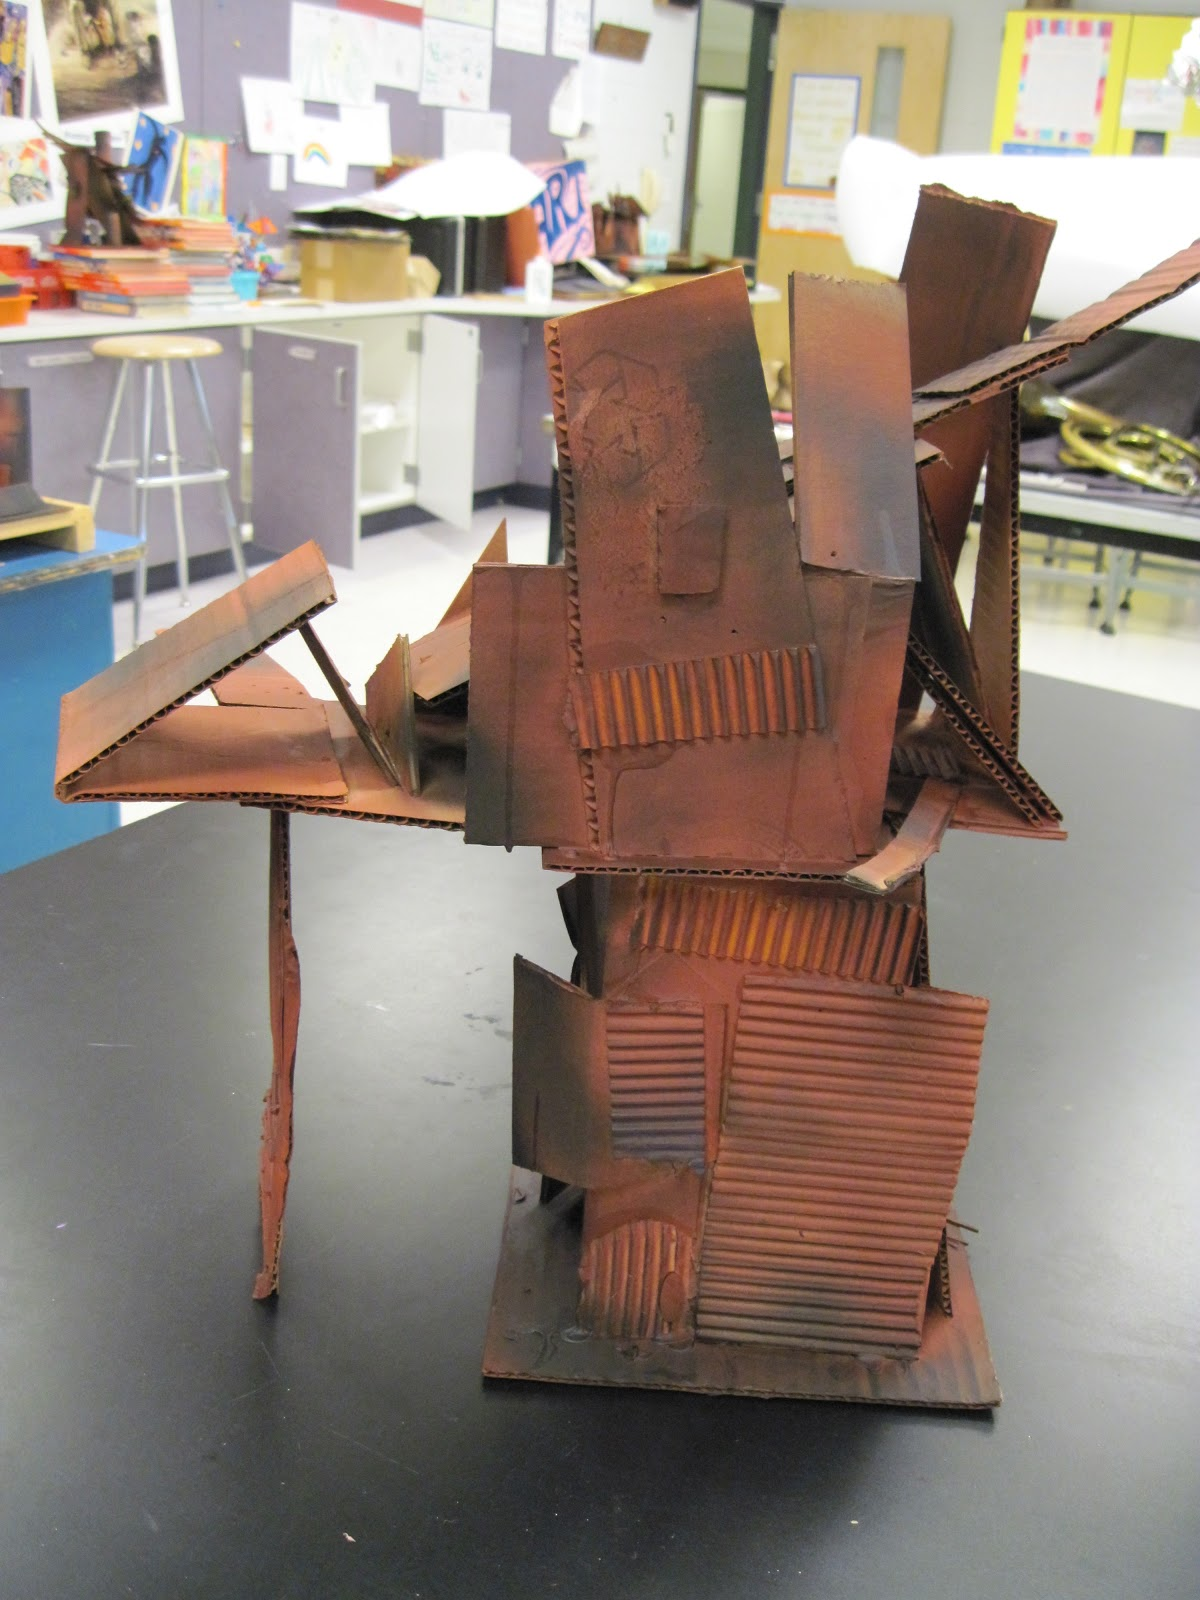 There's a Dragon in my Art Room: Crooked old cardboard houses